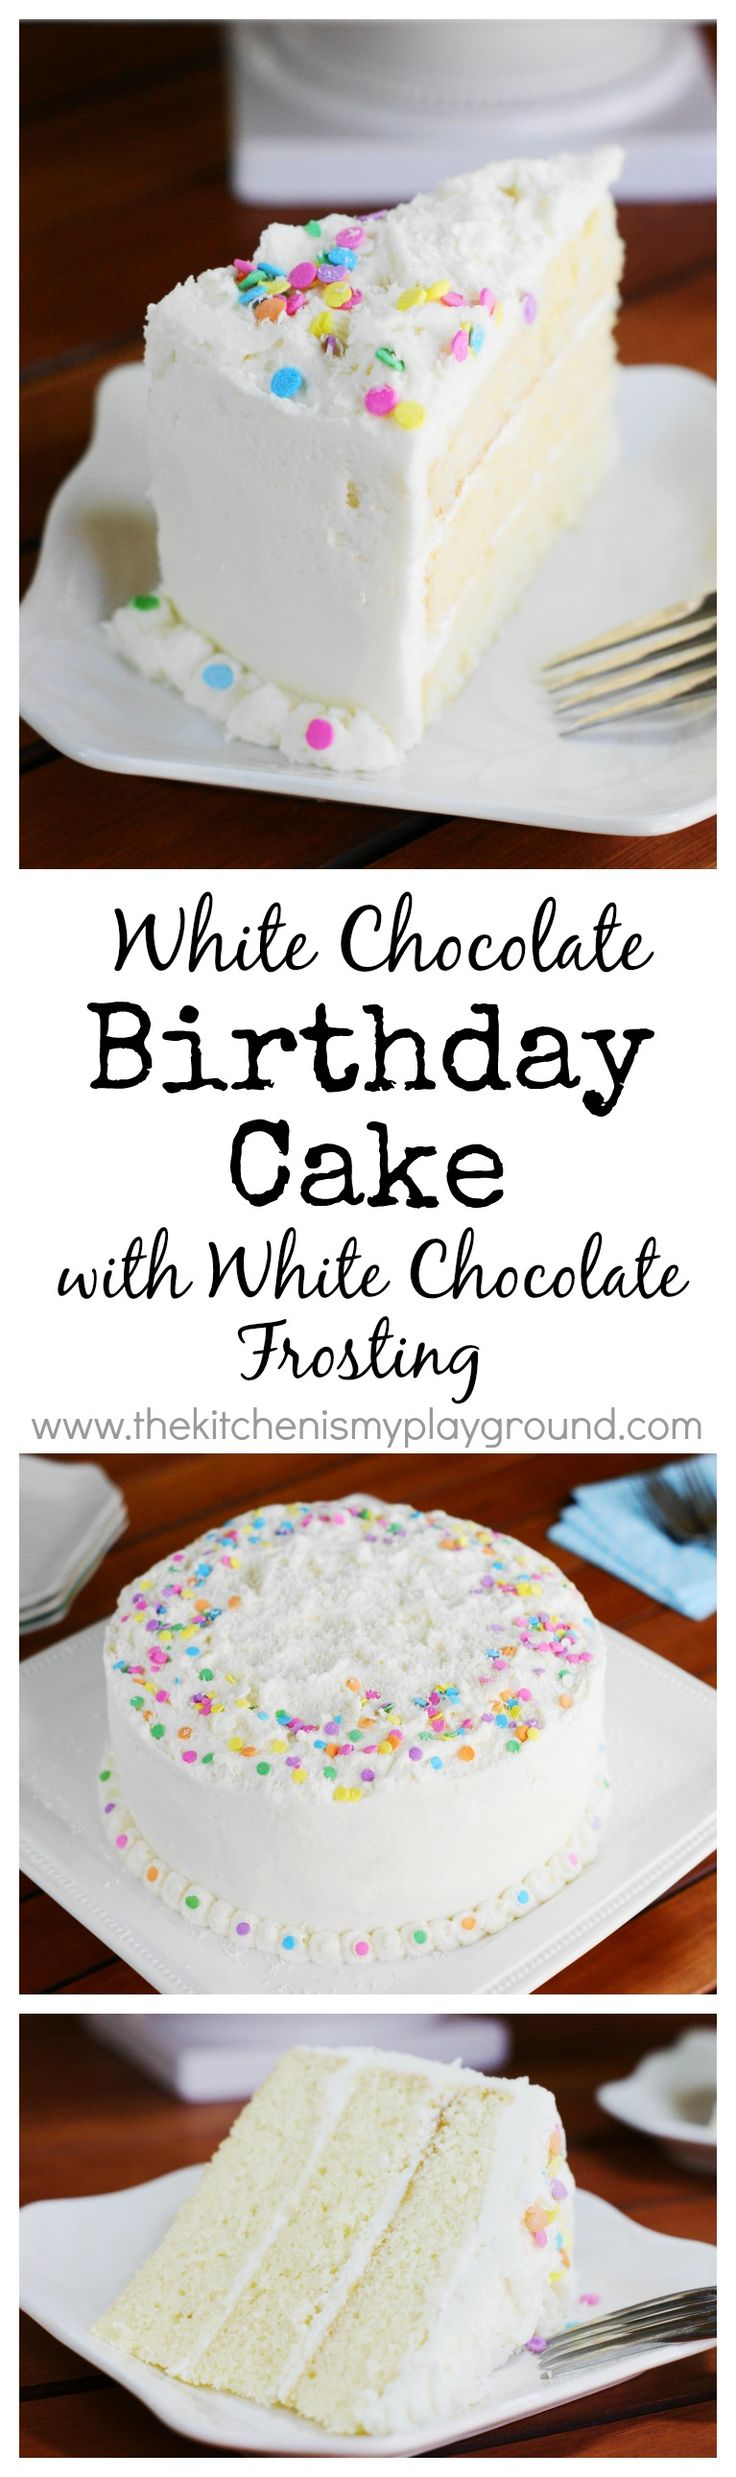 White Chocolate Birthday Cake ~ loaded with white chocolate in both the #cake itself and the frosting!    #birthdaycake #whitechocolate www.thekitchenismyplayground.com